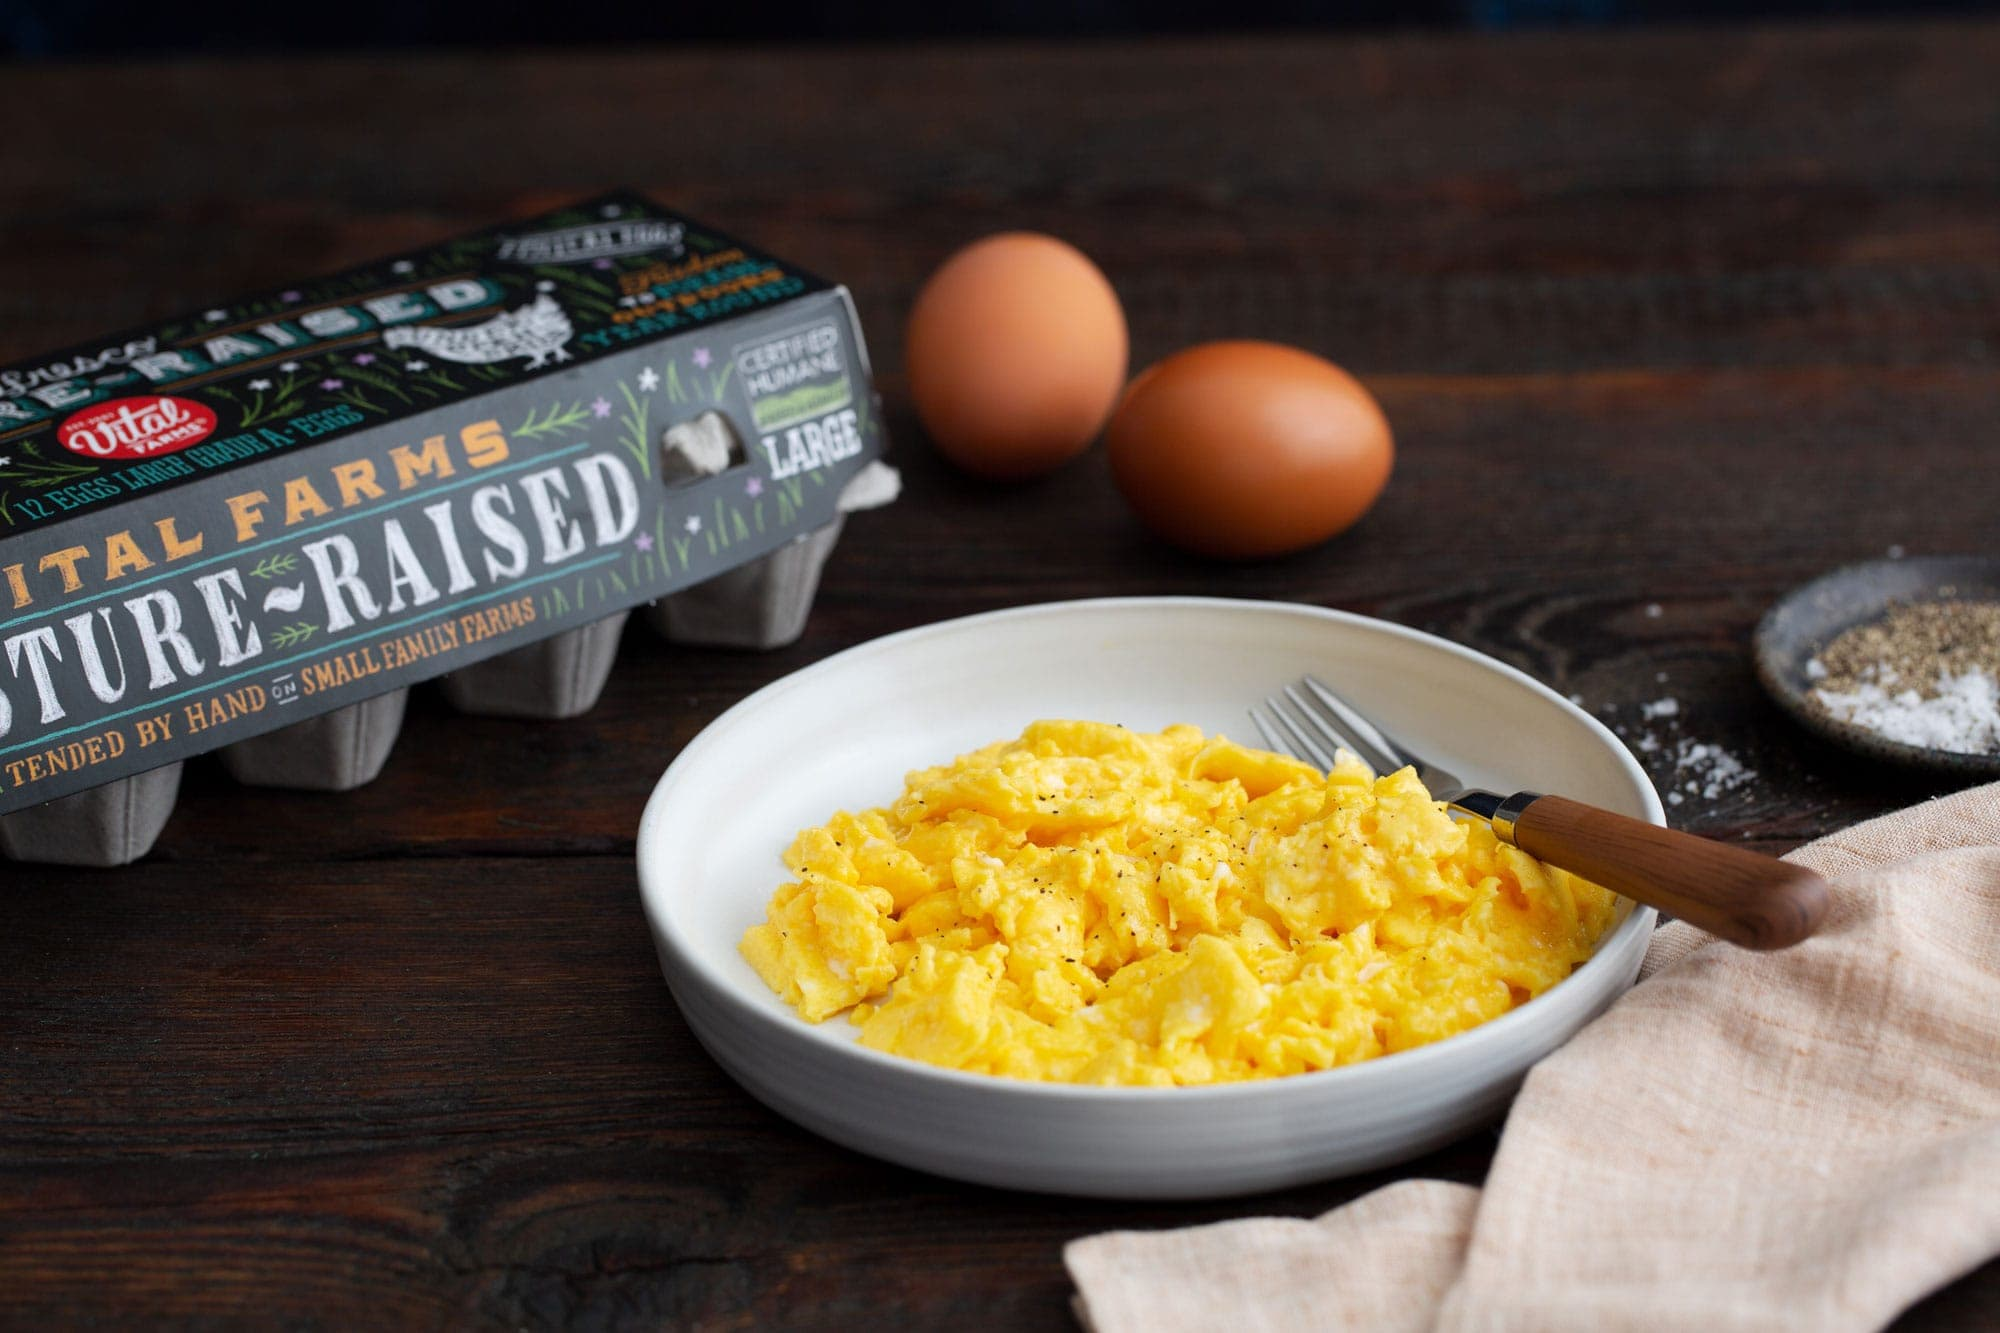 Scrambled Eggs in a dish on a wood counter with Vital Farms egg carton and eggs in the background.